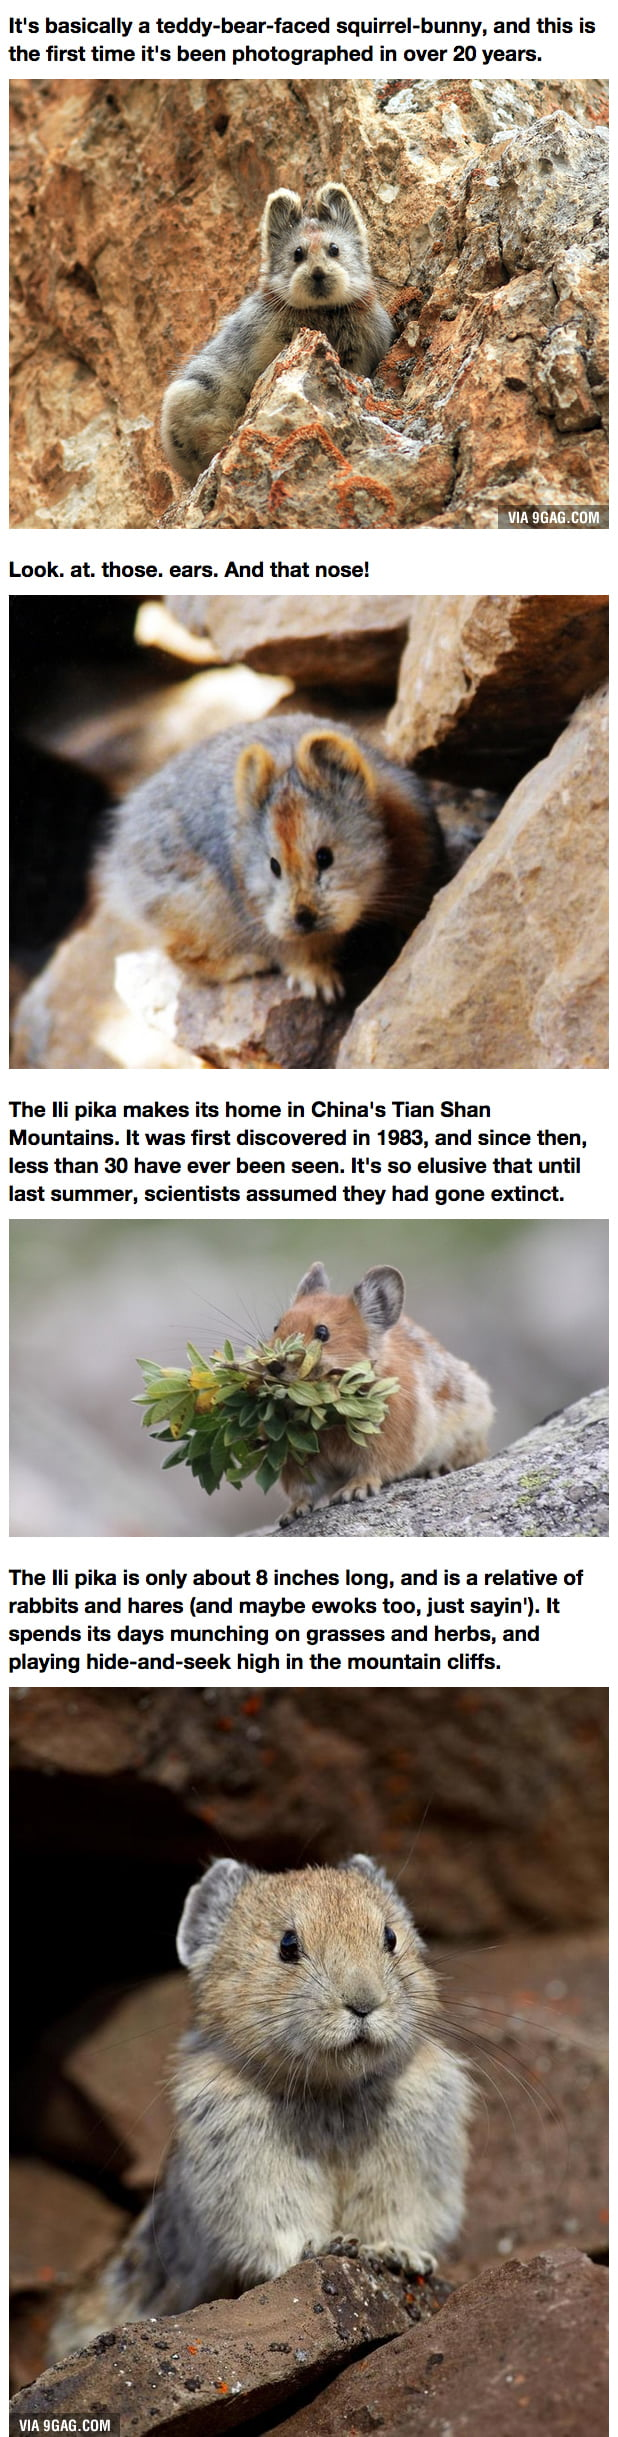 Hidden From Humans for 20 Years, This Little Cutie Is The Real-Life Teddybear You Never Knew Existed!